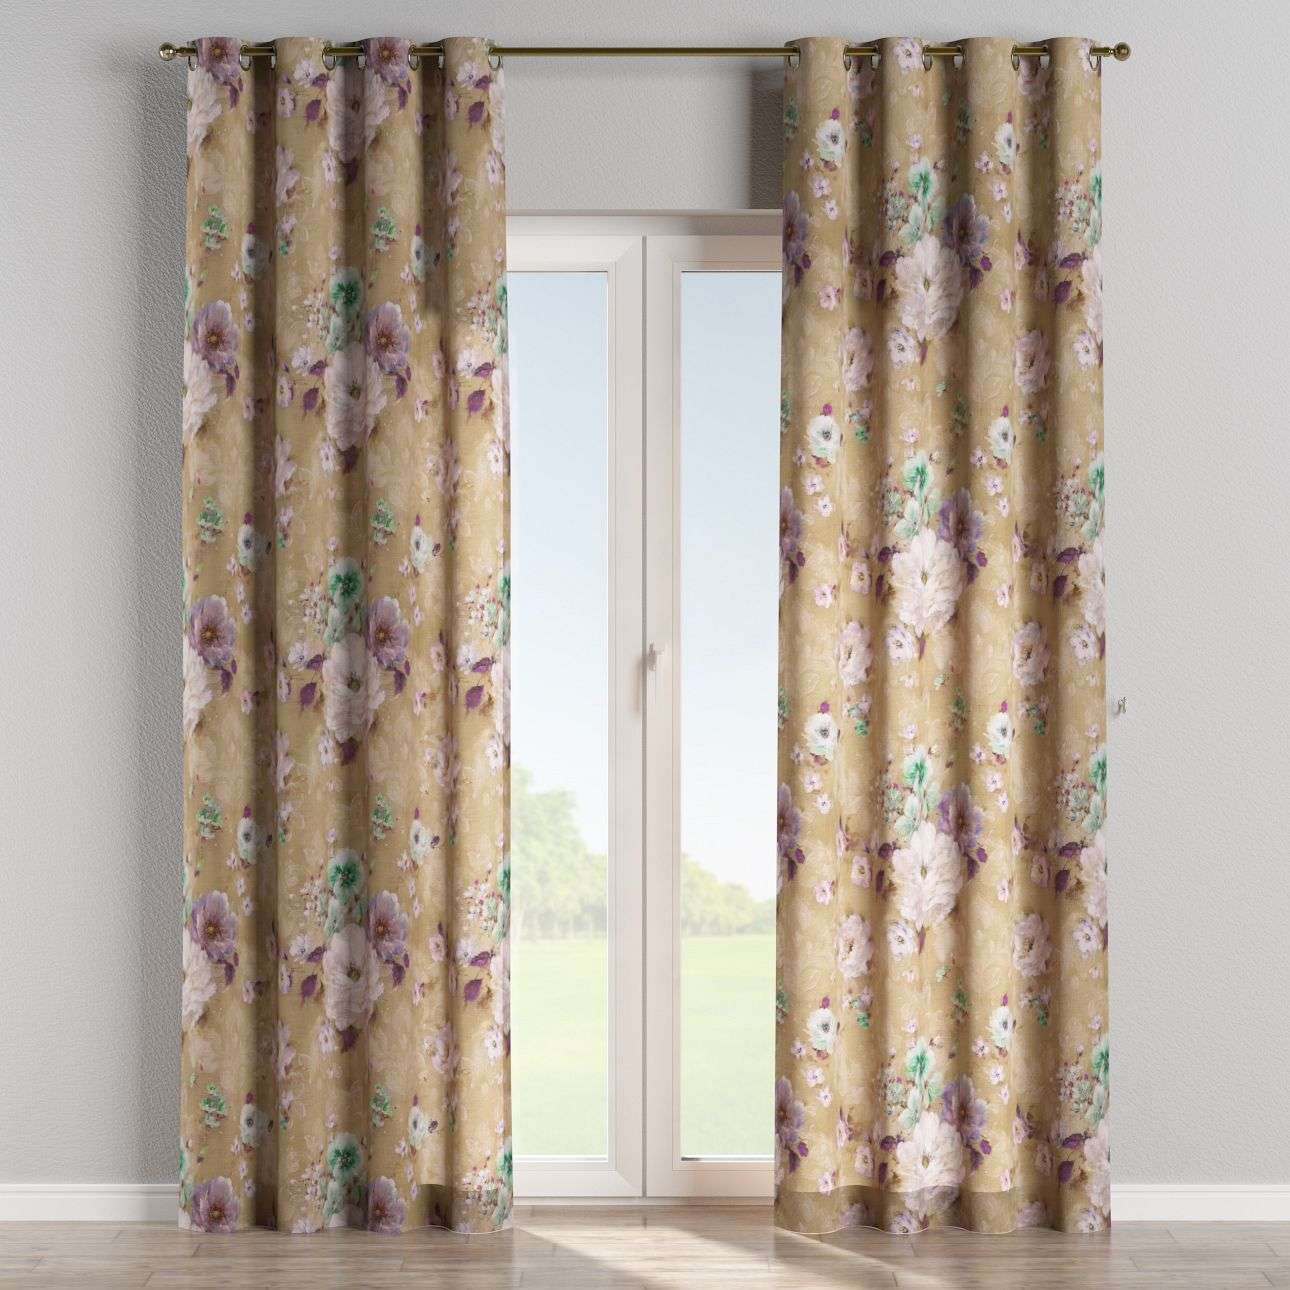 Eyelet curtains 130 x 260 cm (51 x 102 inch) in collection Monet, fabric: 137-82